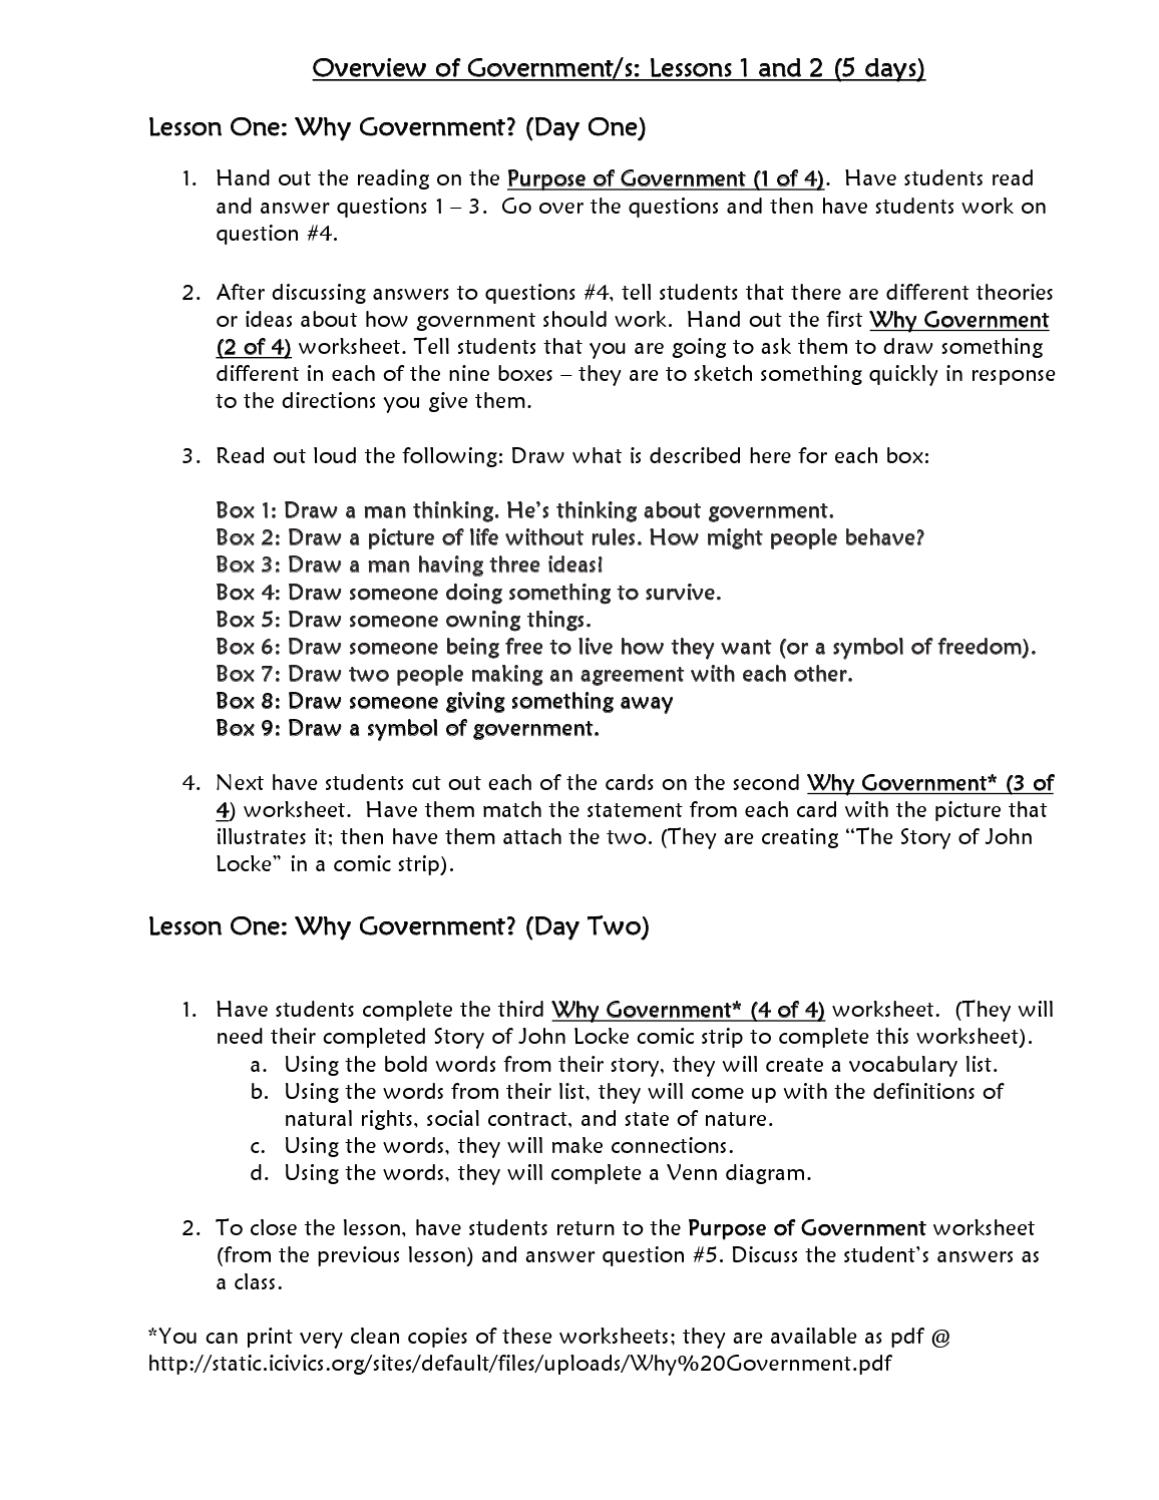 Workbooks types of government worksheets : Grade 5 Government Lessons 1 2 by Half Hollow Hills Schools - issuu